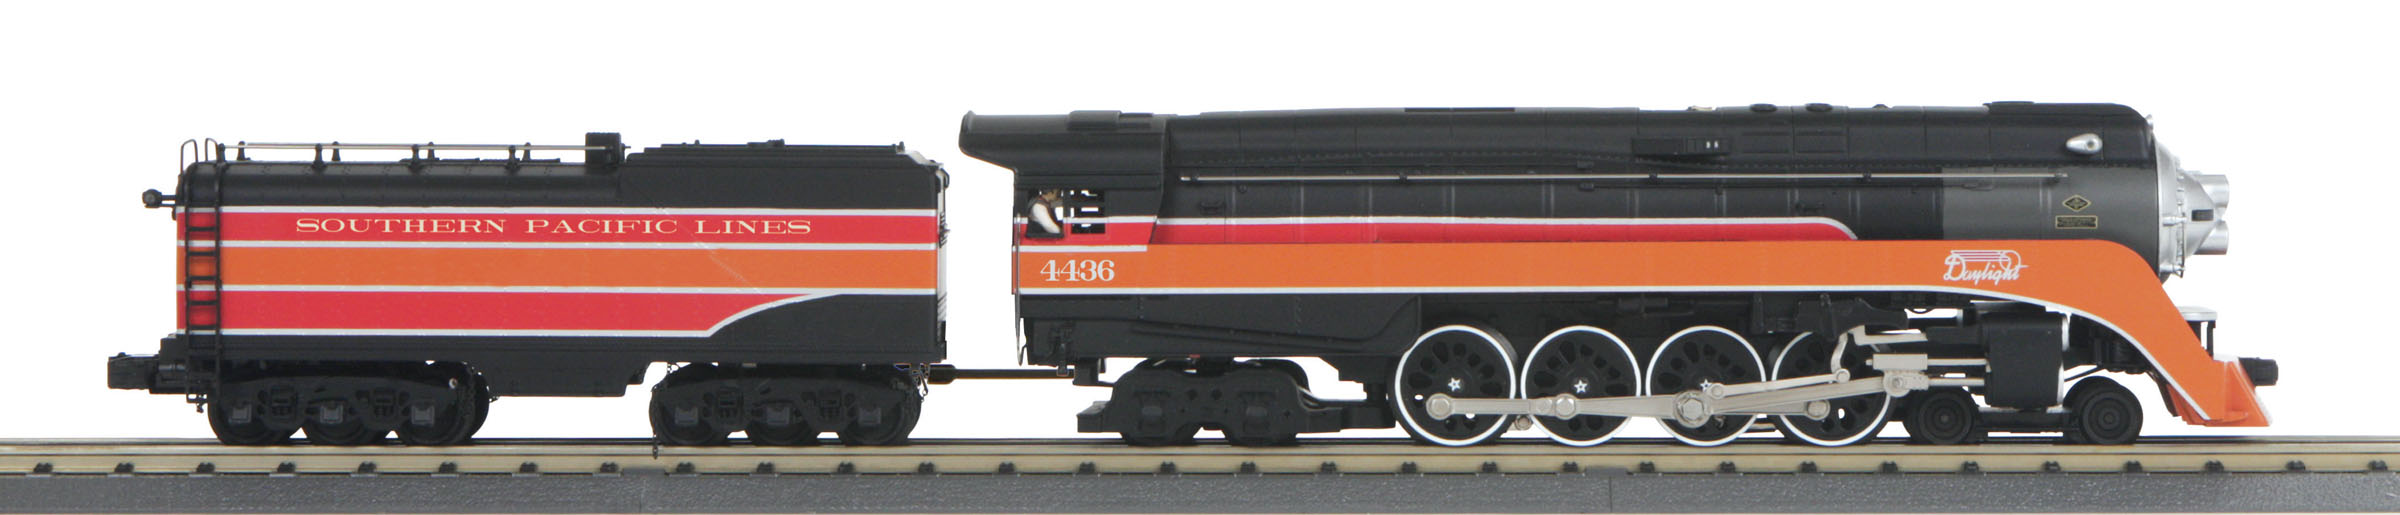 Lionel Trains 2046w Tender Wiring Diagram Master 4 8 2 Mohawk 50 Water Pick Up